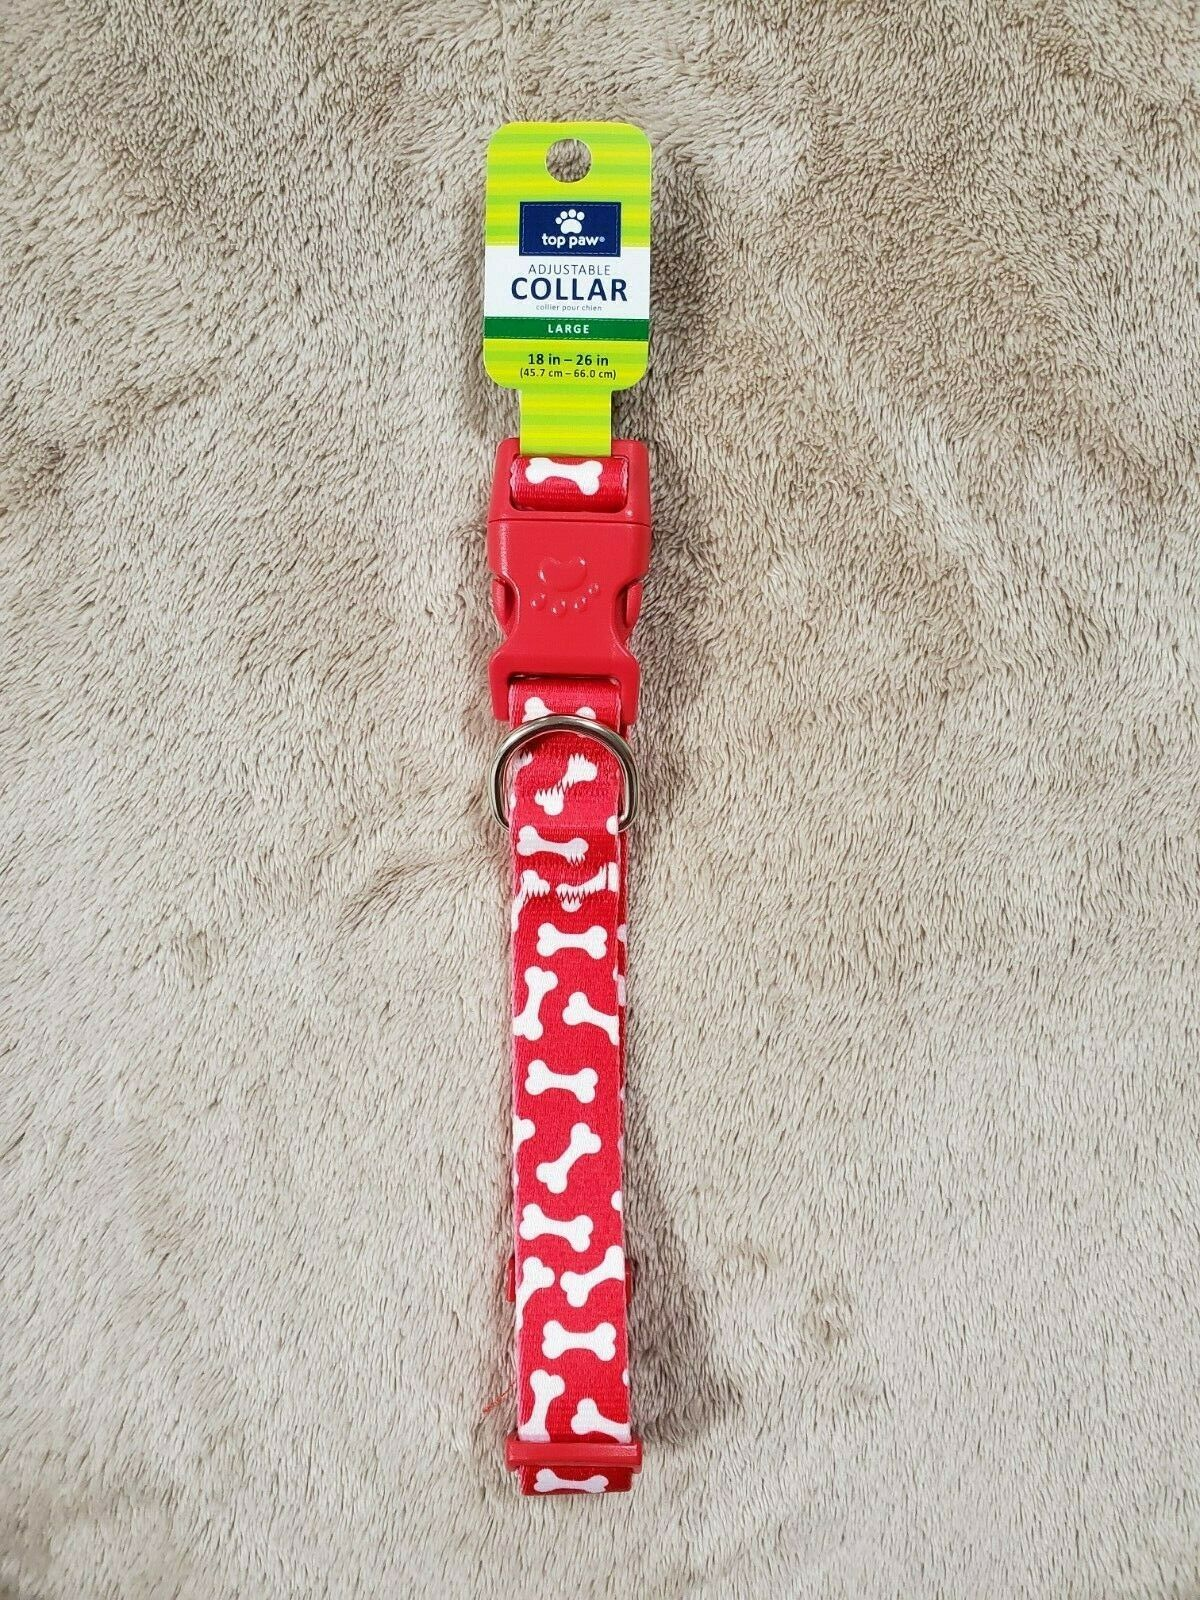 Top Paw Adjustable Collar Large 18-26 in. Red and White